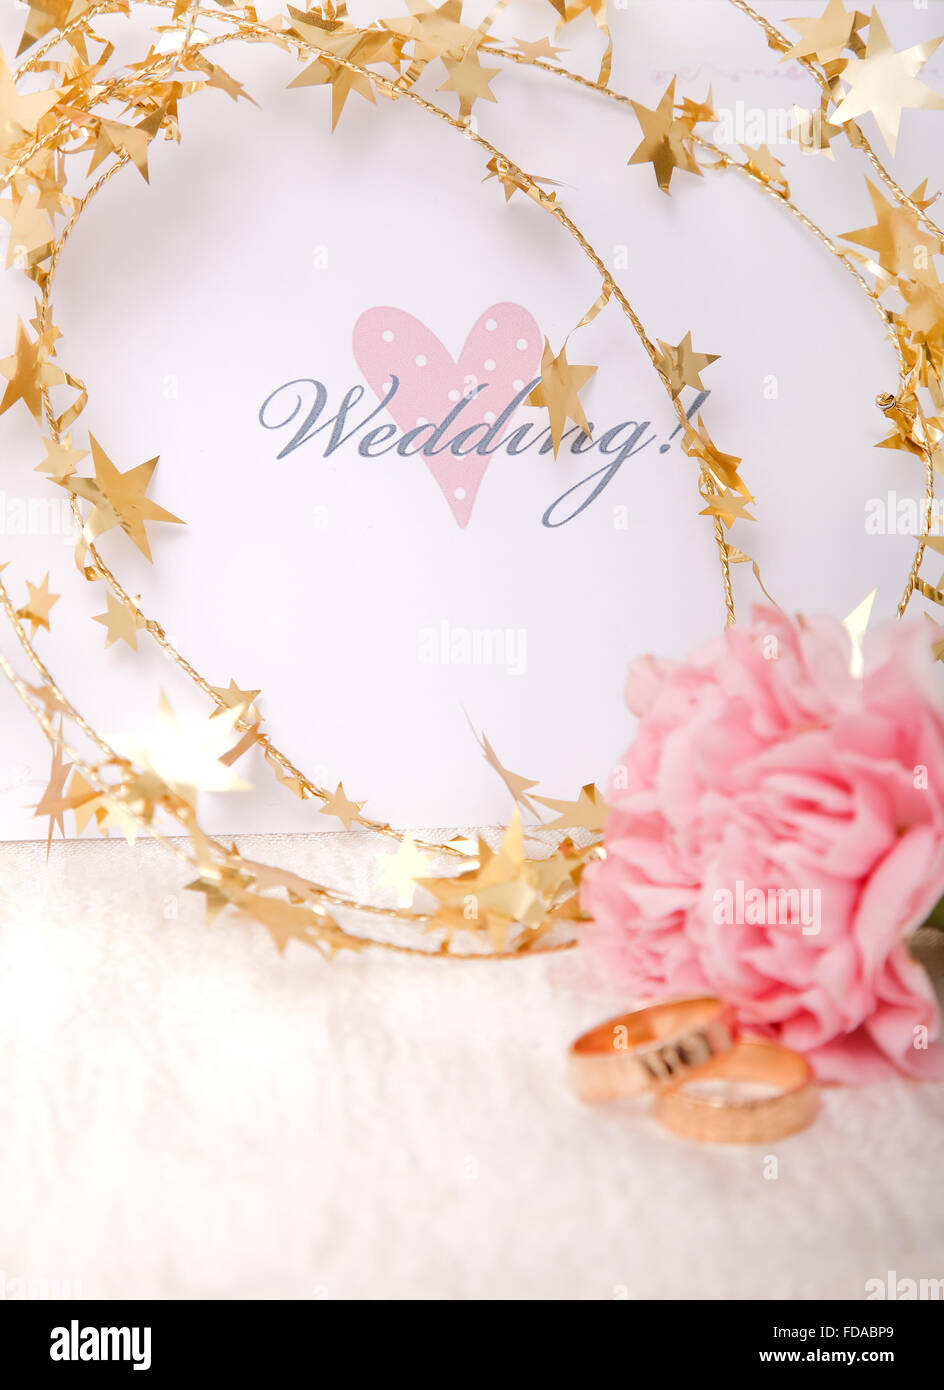 Wedding invitation with gold ribbon and rings - Stock Image